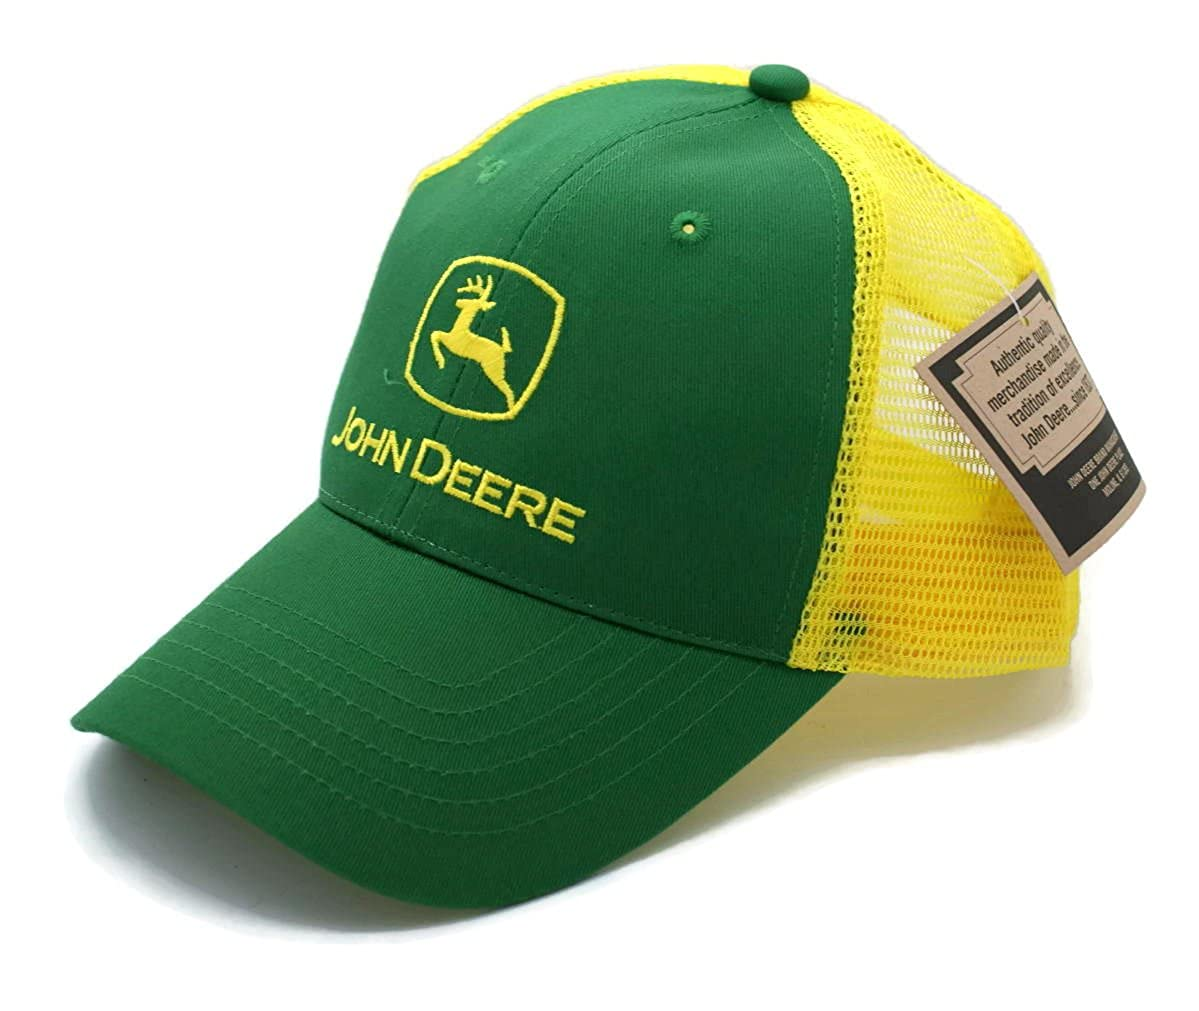 ae486f1f229 Hat - John Deere Vented Trucker Style Adjusable Ball Cap at Amazon Men s  Clothing store